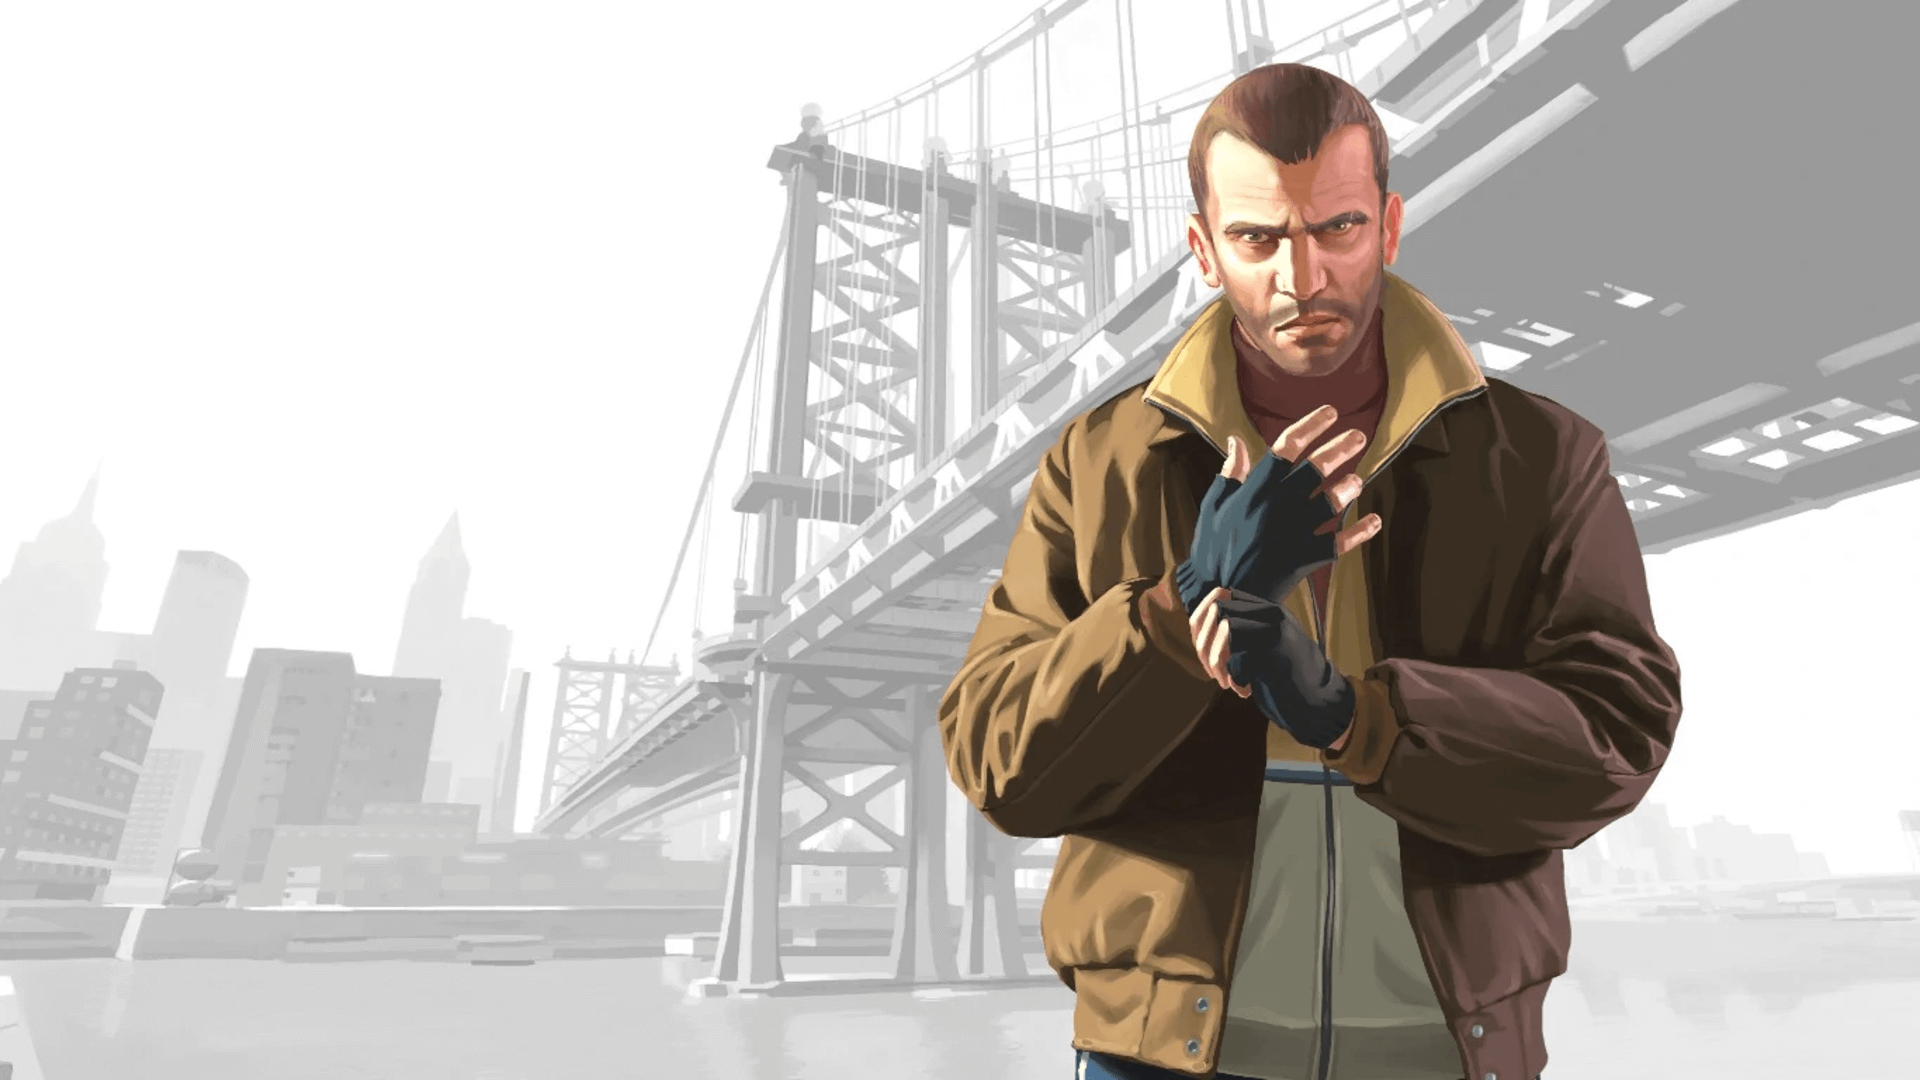 GTA IV removed from Steam thanks to Games for Windows Live